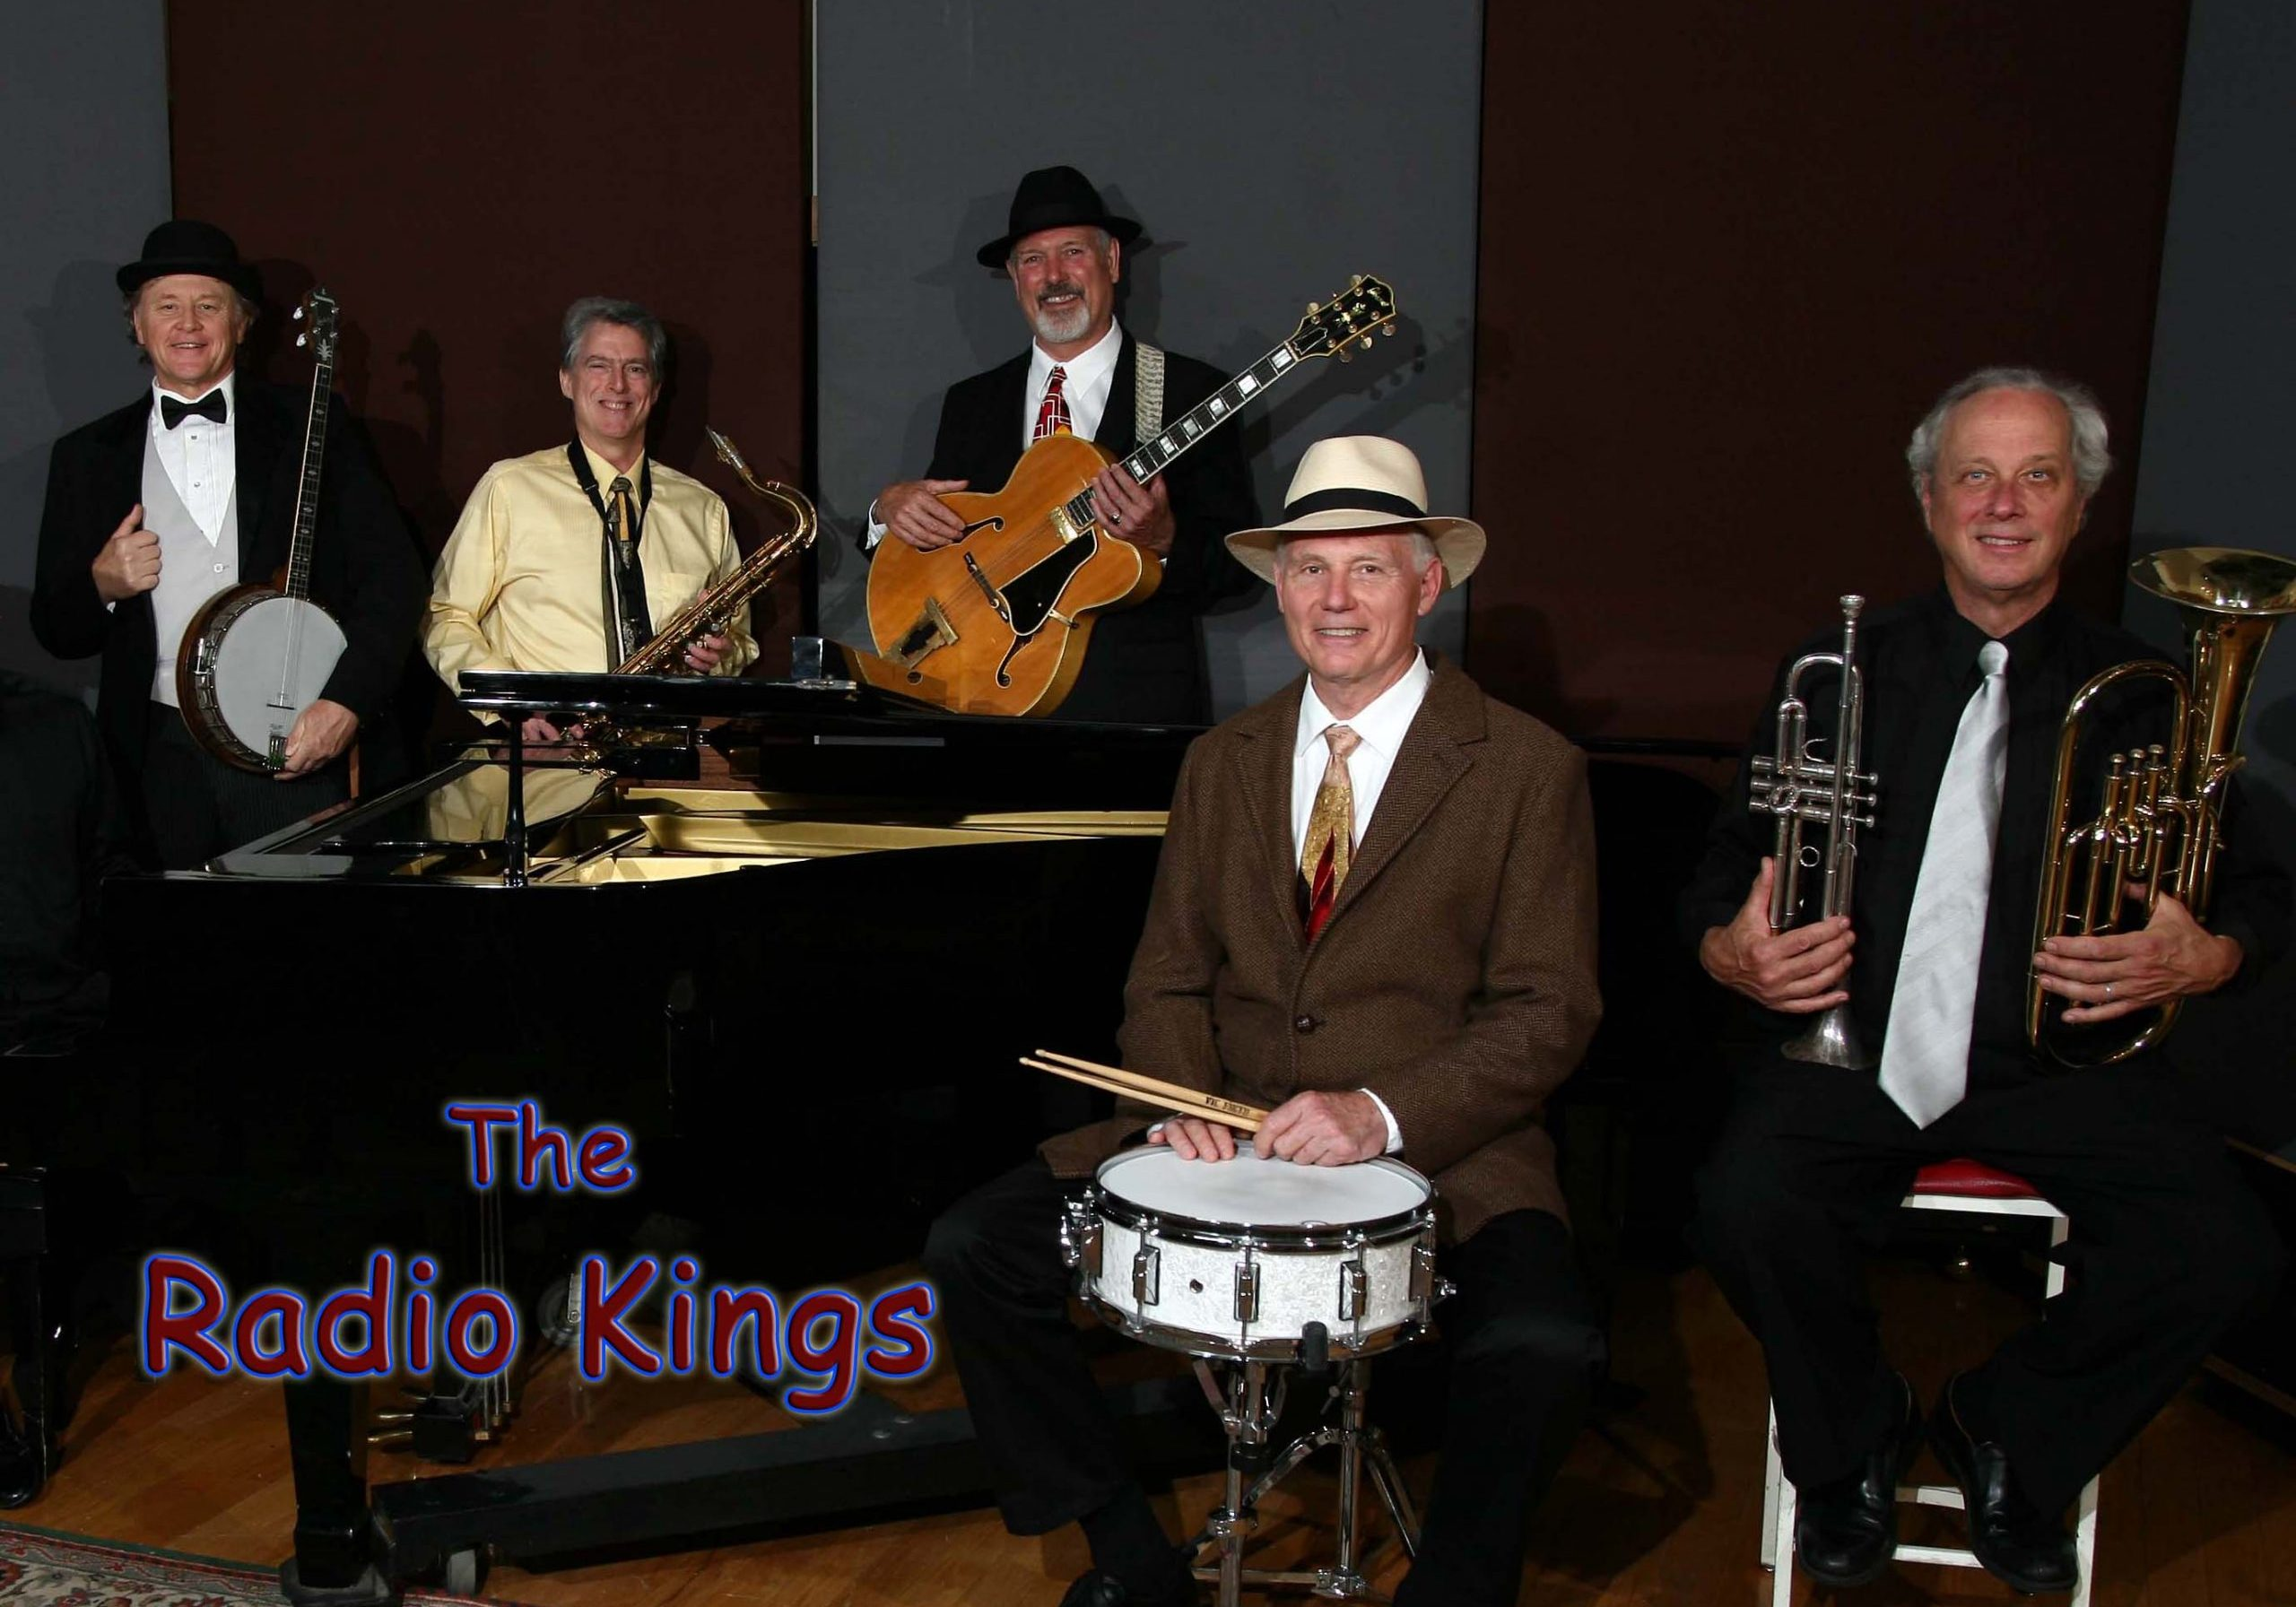 Radio Kings Roaring 20s